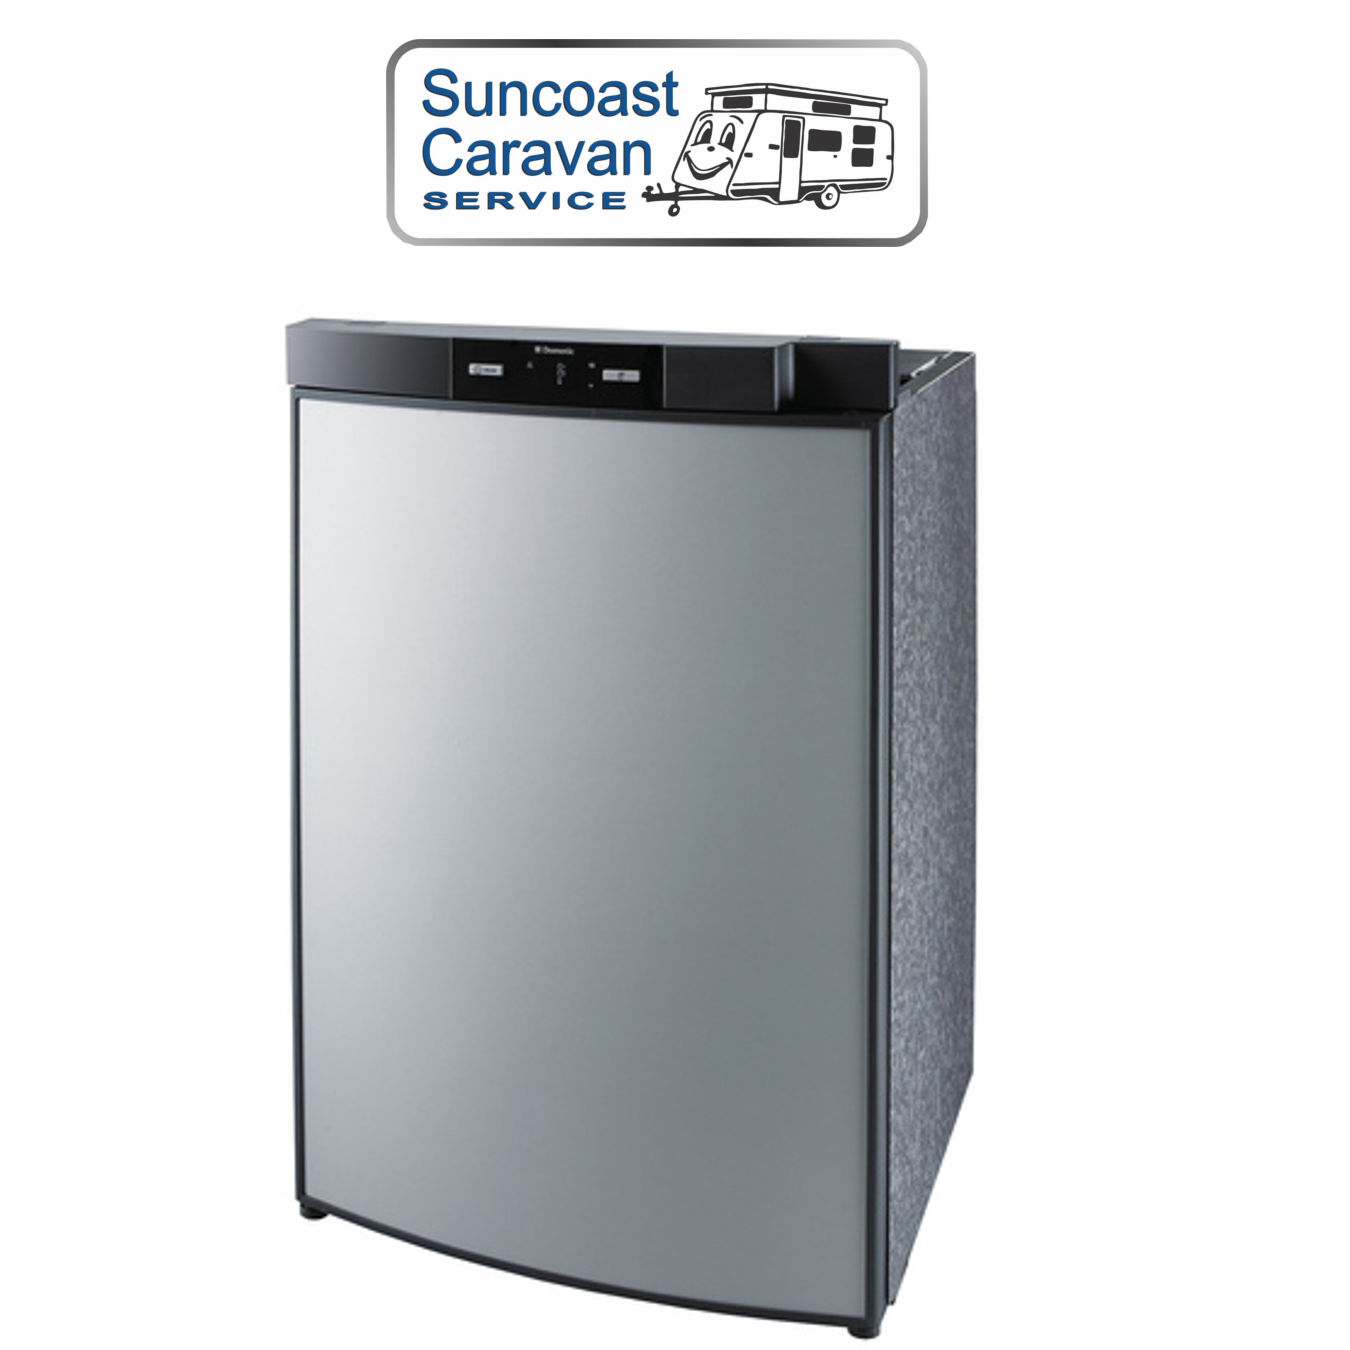 Dometic Rm8501 106l 3 Way 12v 240v Gas Fridge Suncoast